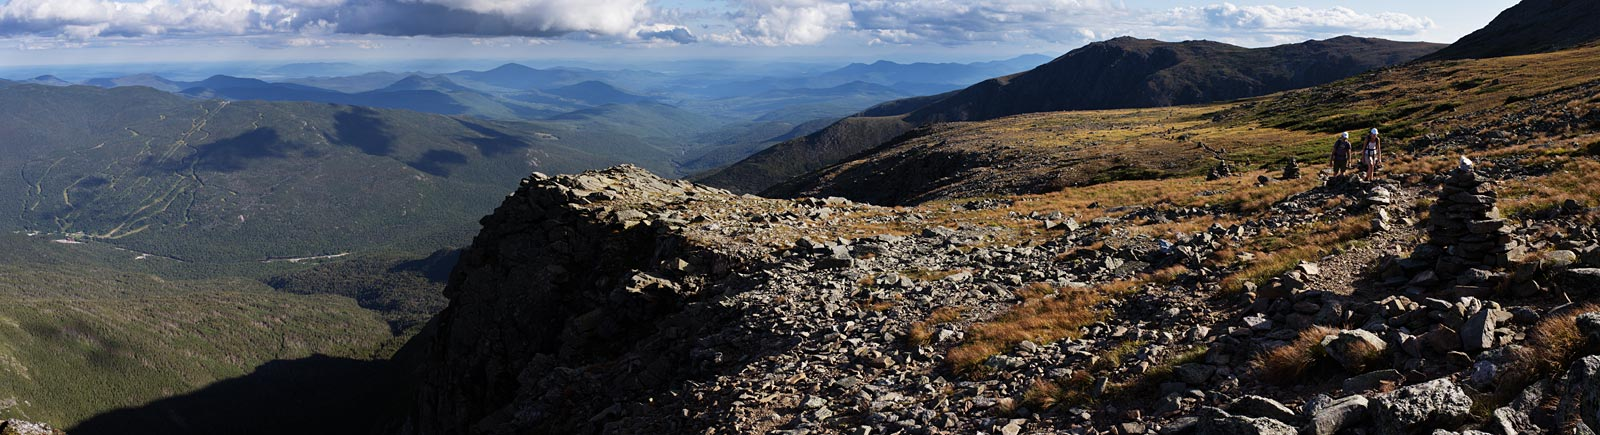 mt_washington_alpine_gardens